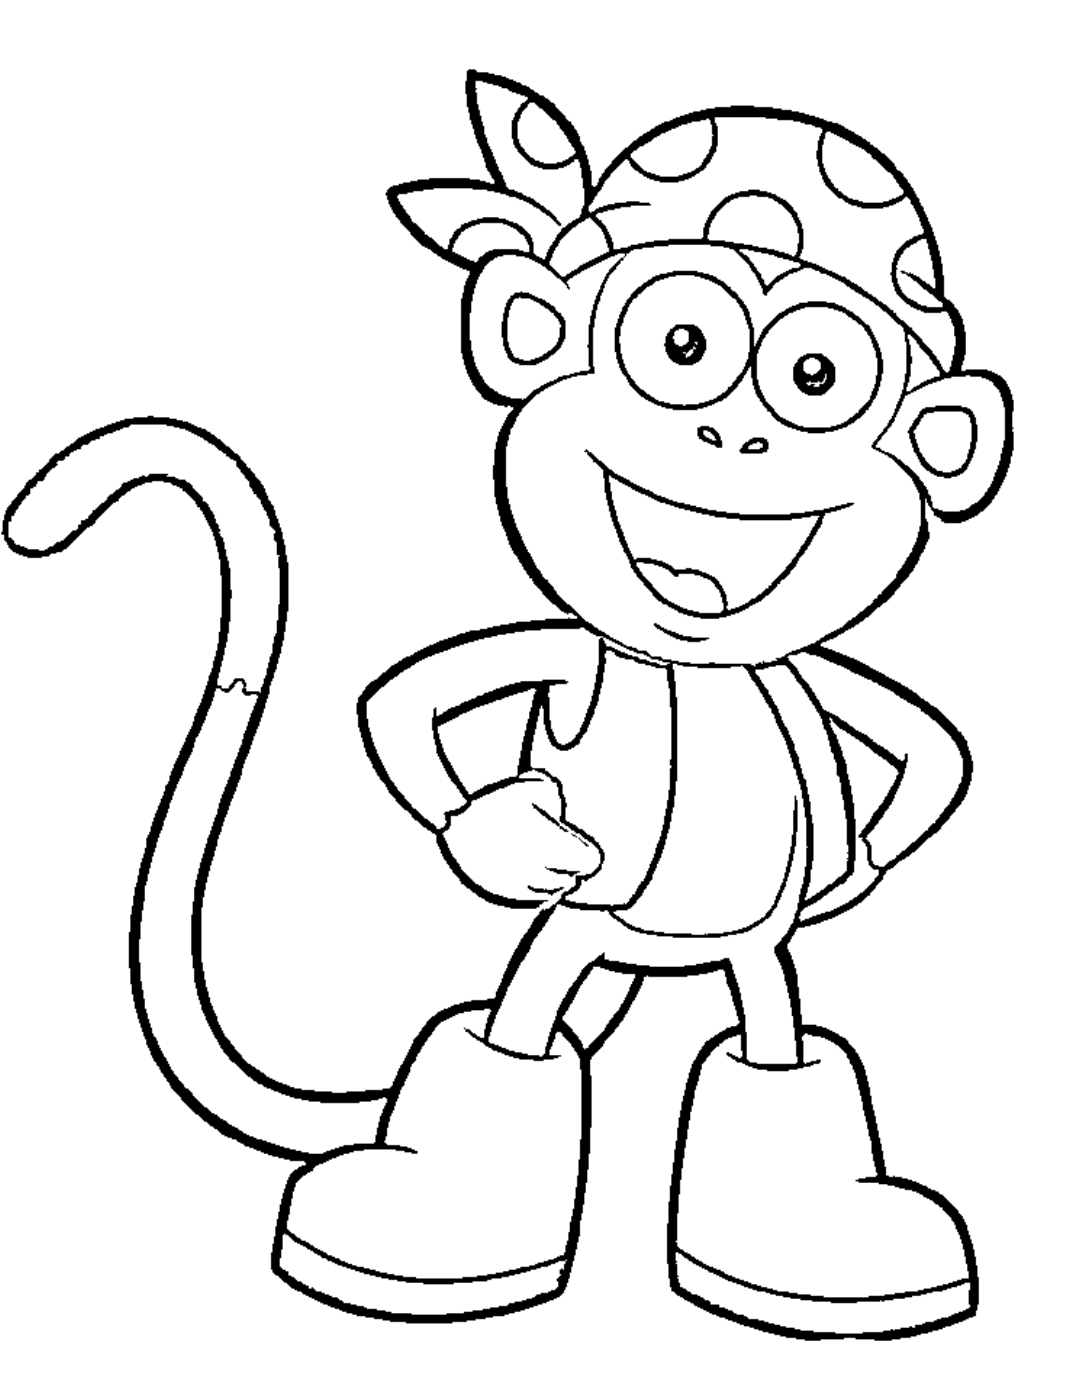 Printable Cartoon Characters Coloring Pages - Coloring Home